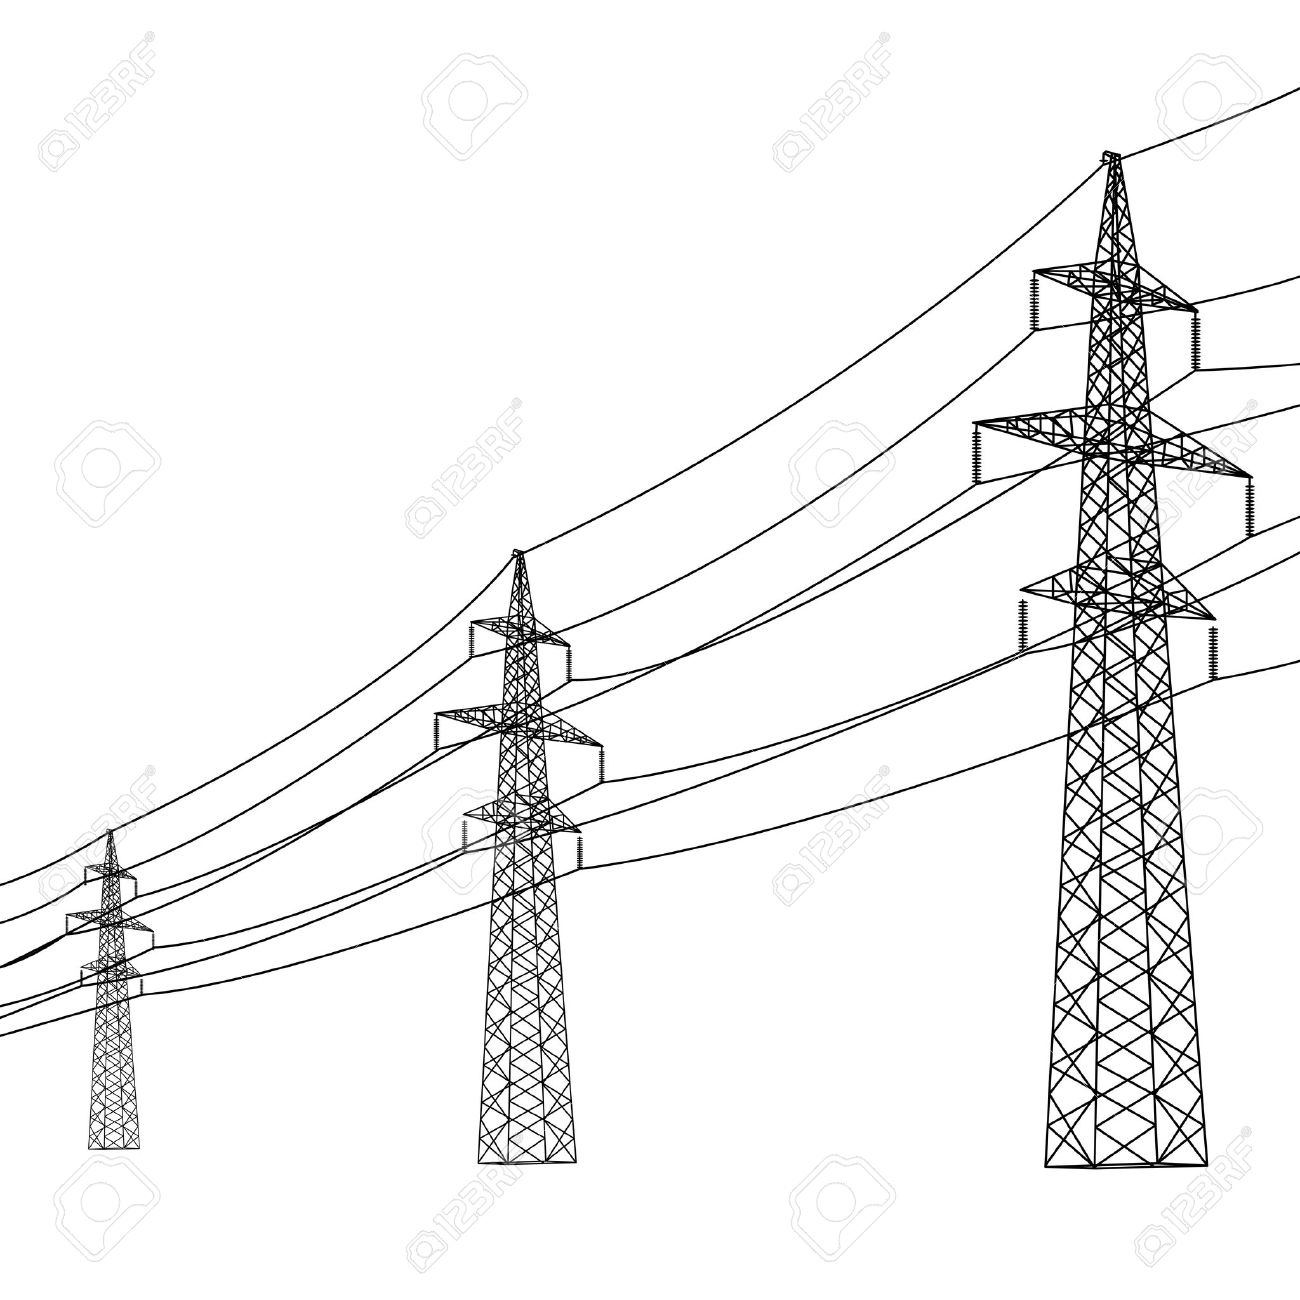 Utility Pole Drawing At Getdrawings